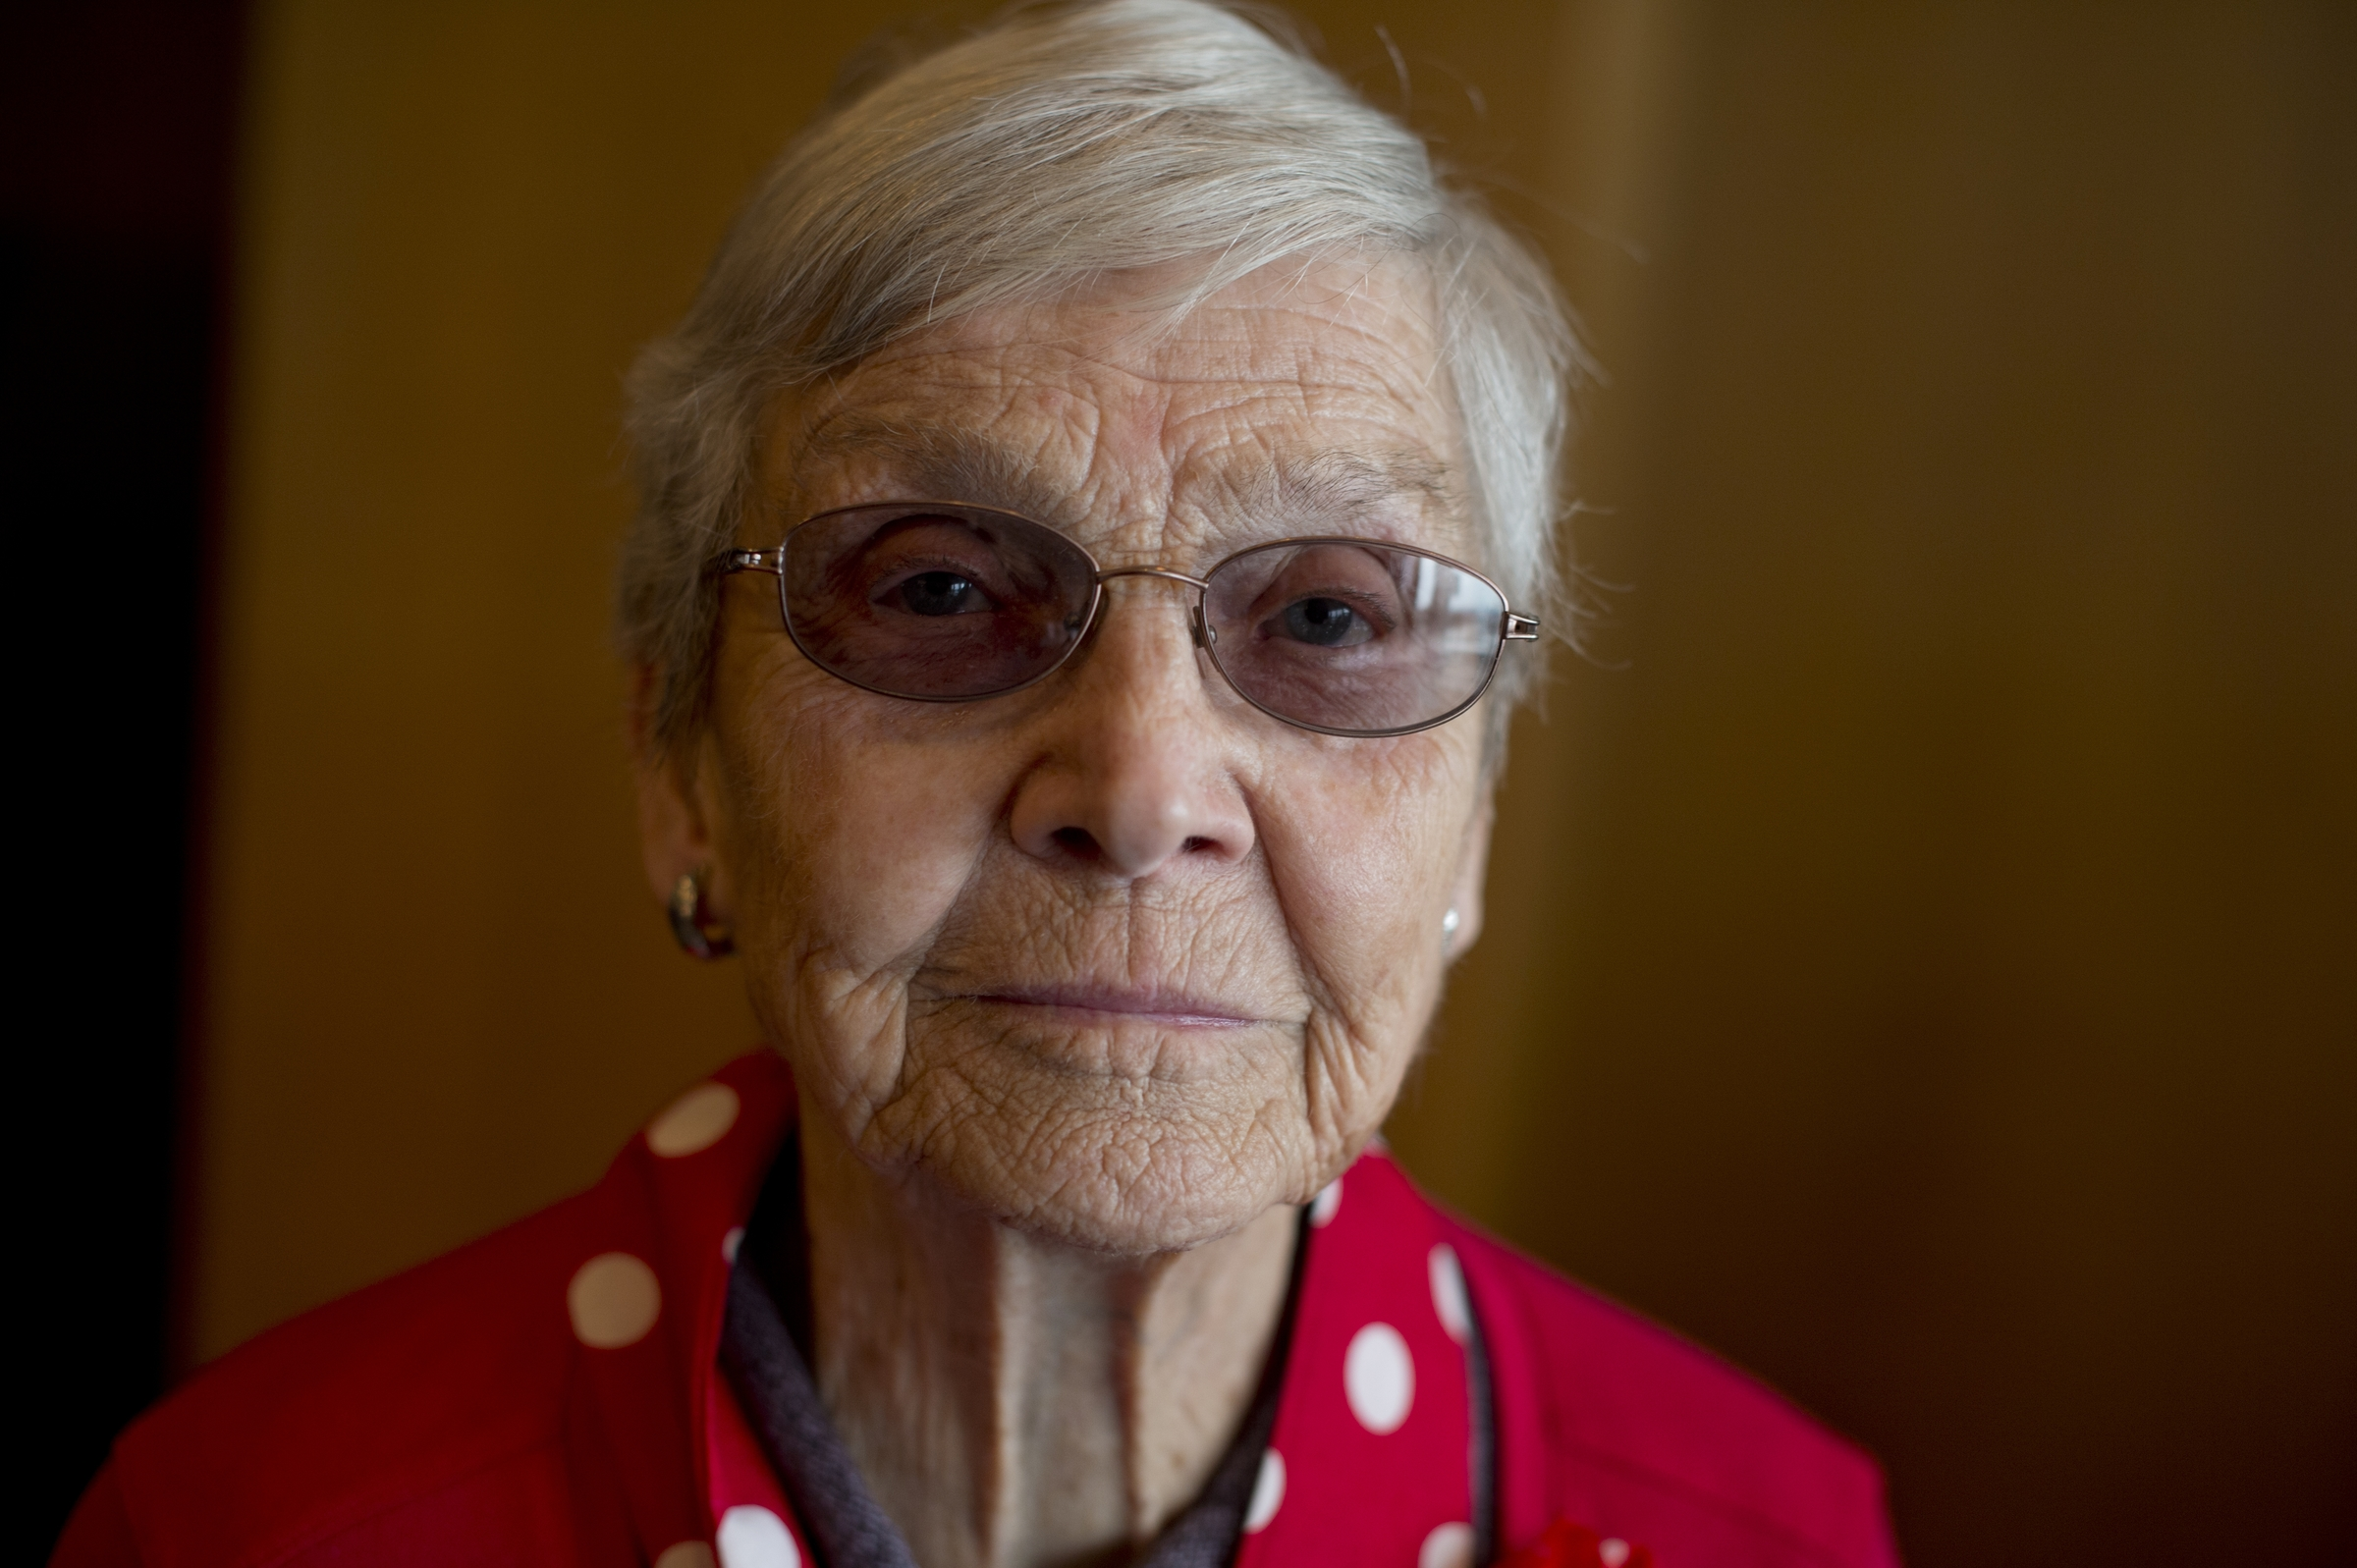 UNITED STATES - MARCH 22: Joyce Nowak, a World War II era Rosie the Riveter, is photographed during a lunch for a group of about 30 Rosies at the Library of Congress, March 22, 2016. They were part of an Honor Flight from Detroit who were on a tour of D.C. that included stops on Capitol Hill, the World War II Memorial, and Arlington National Cemetery. (Photo By Tom Williams/CQ Roll Call)